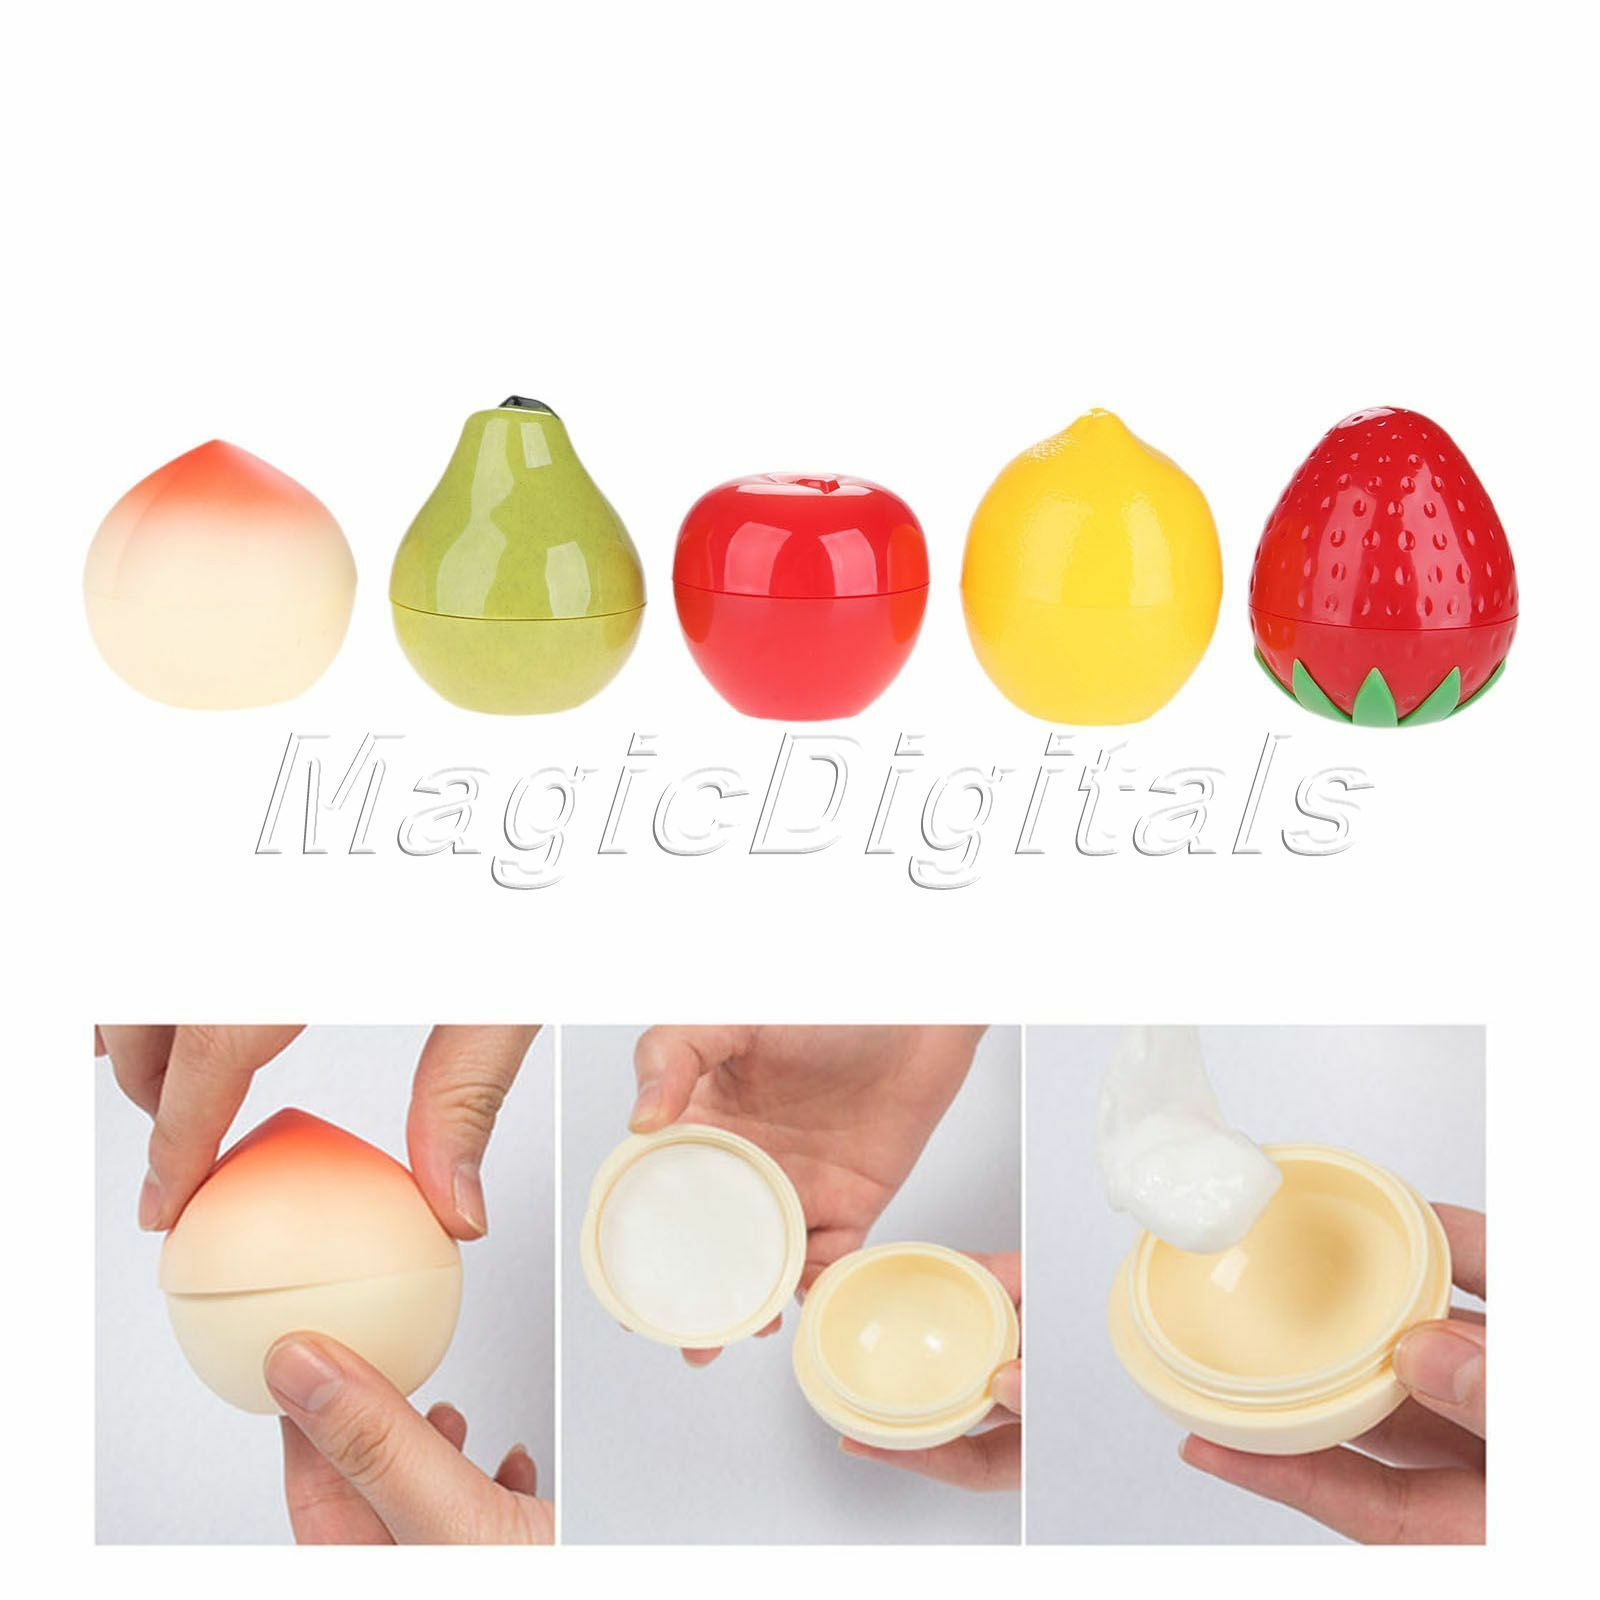 Cute Fruit Shape Cosmetic Cream Lip Balm Box Storage Container Empty Pot Frosted Jar 10gr 30g 1 Of 8free Shipping See More